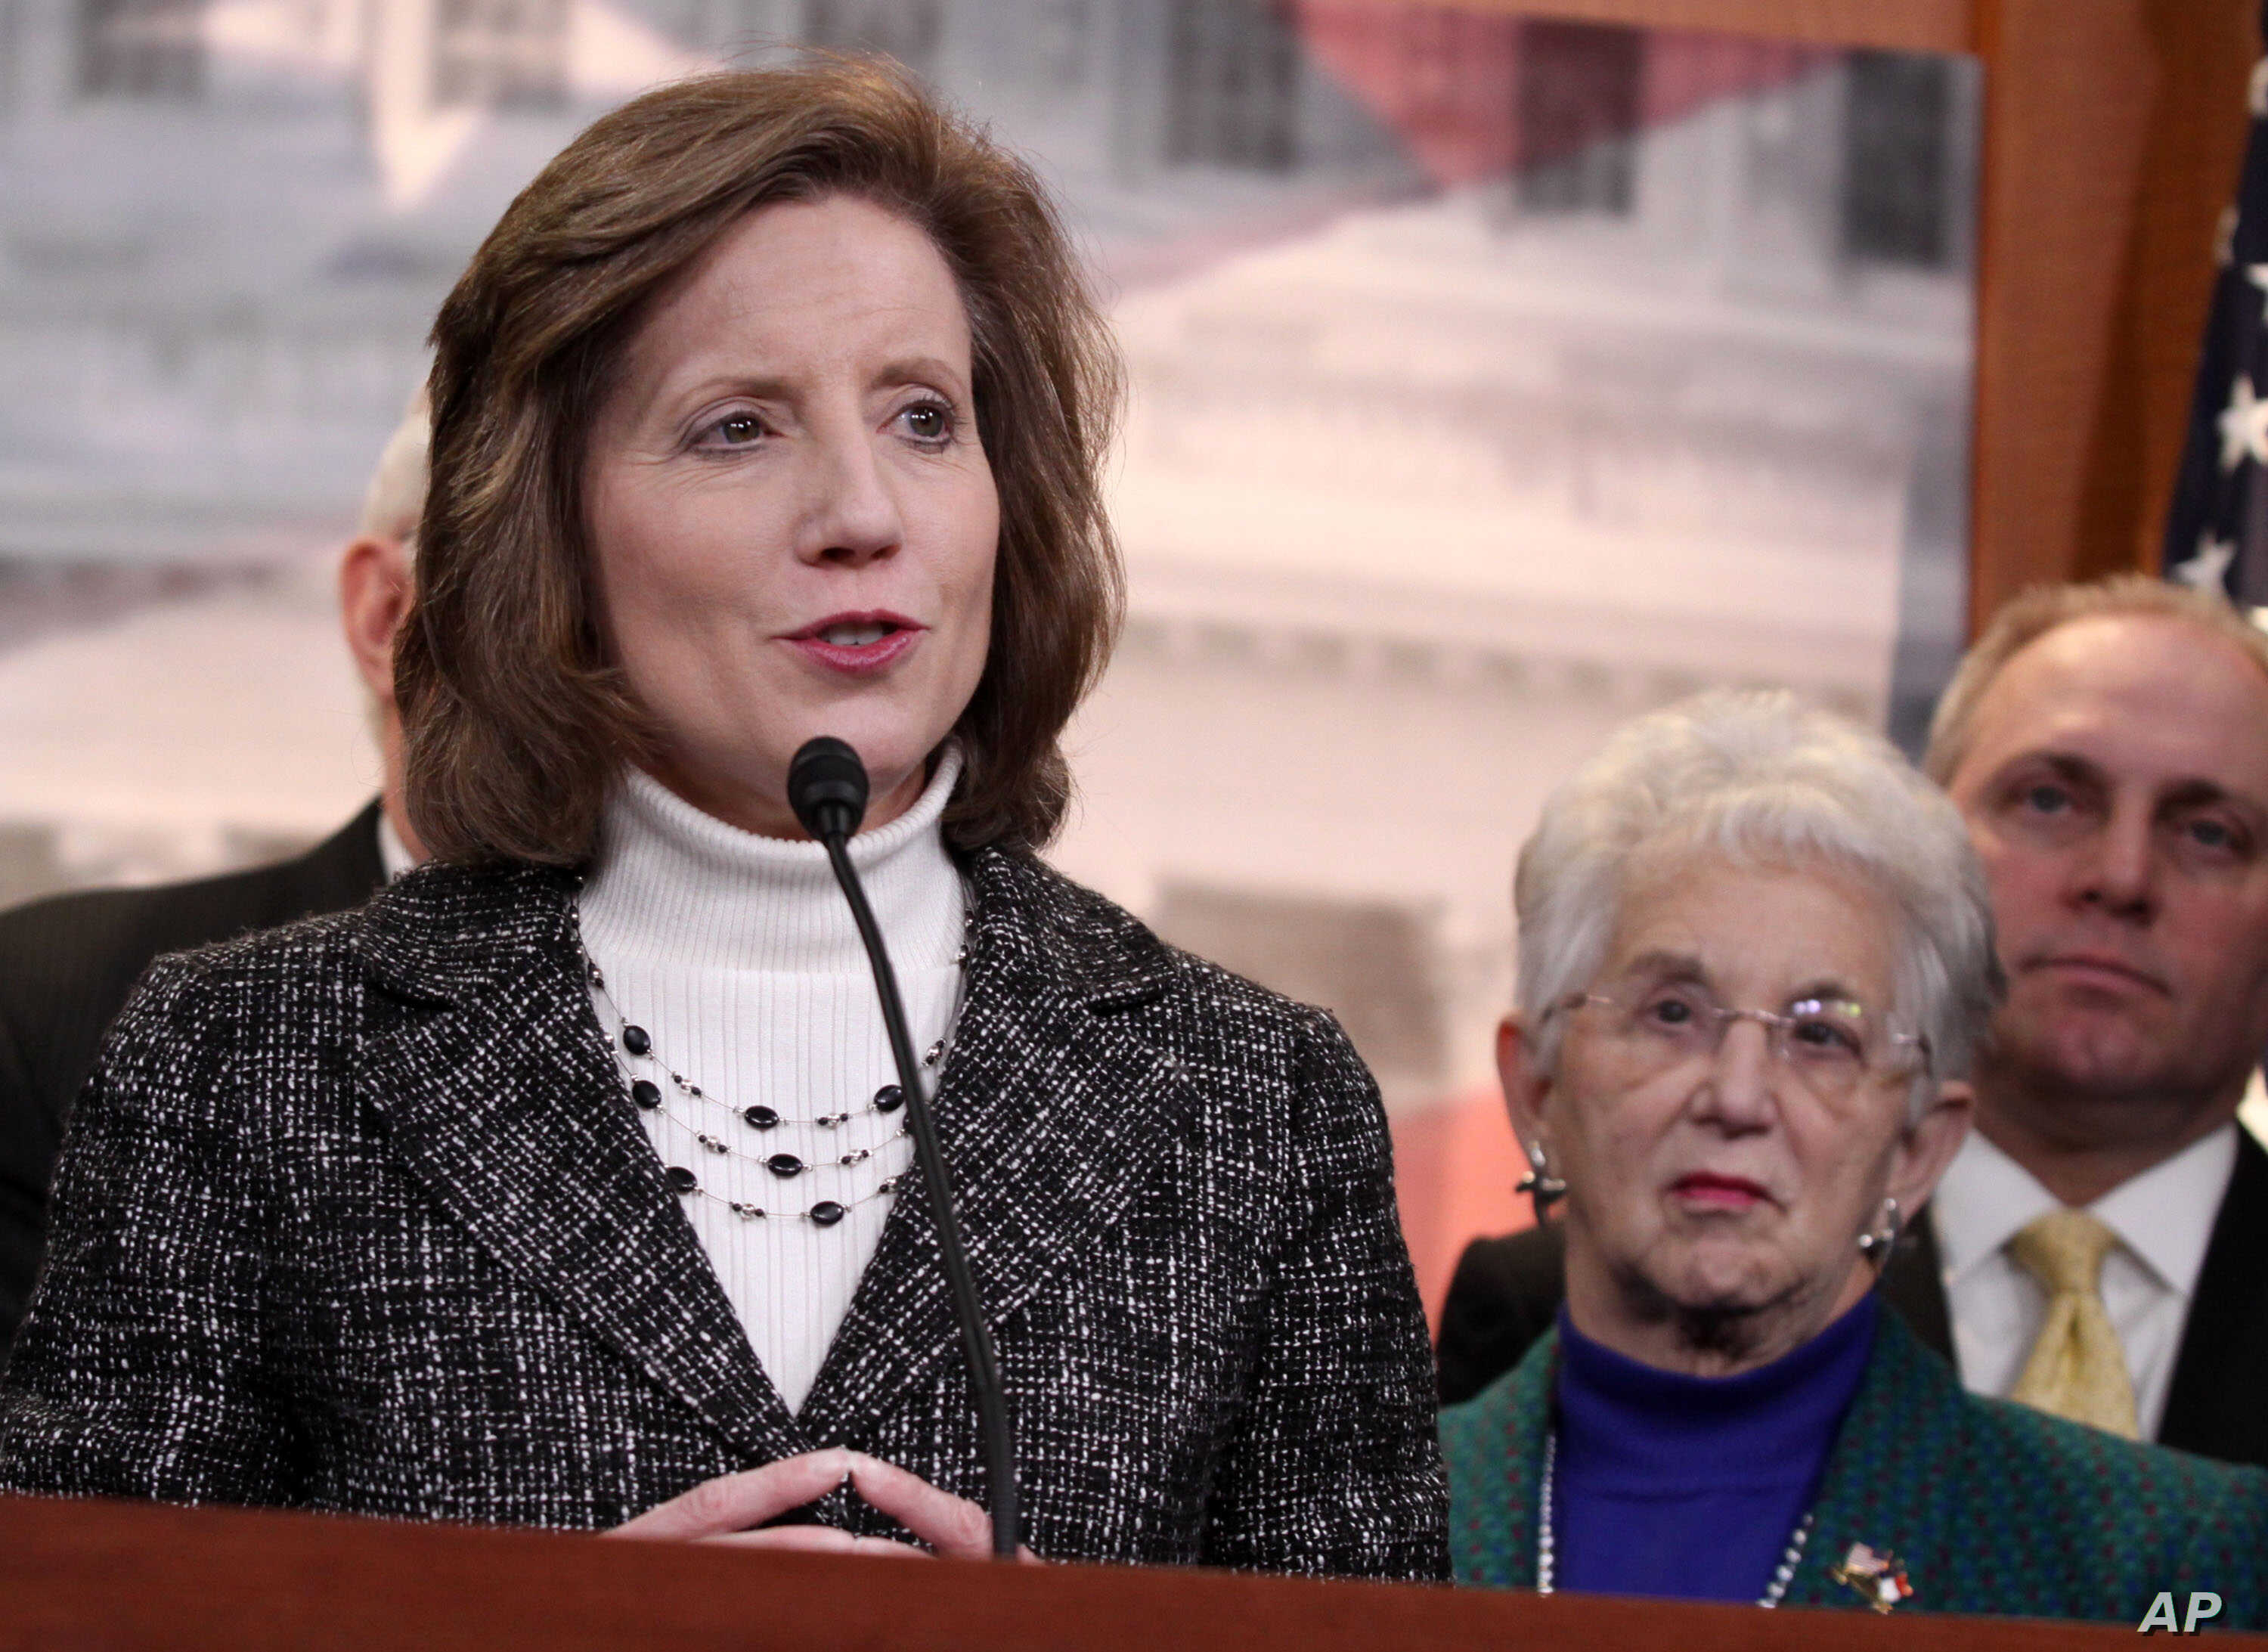 FILE - Rep. Vicky Hartzler, R-Mo., left, speaks to reporters on Capitol Hill in Washington, March 25, 2014.